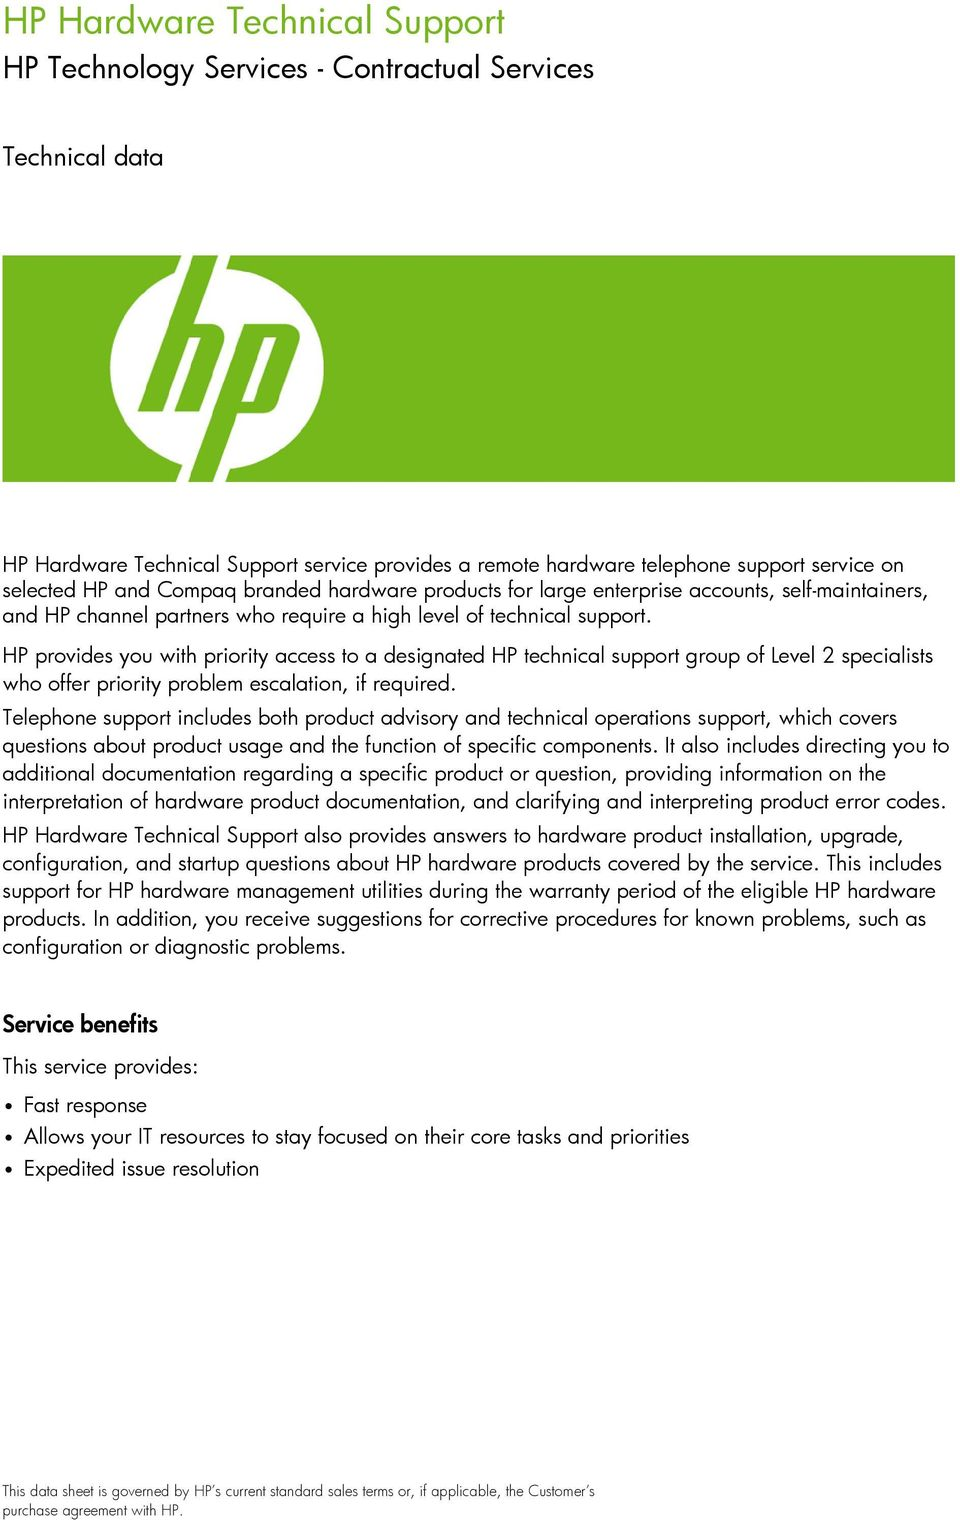 HP provides you with priority access to a designated HP technical support group of Level 2 specialists who offer priority problem escalation, if required.